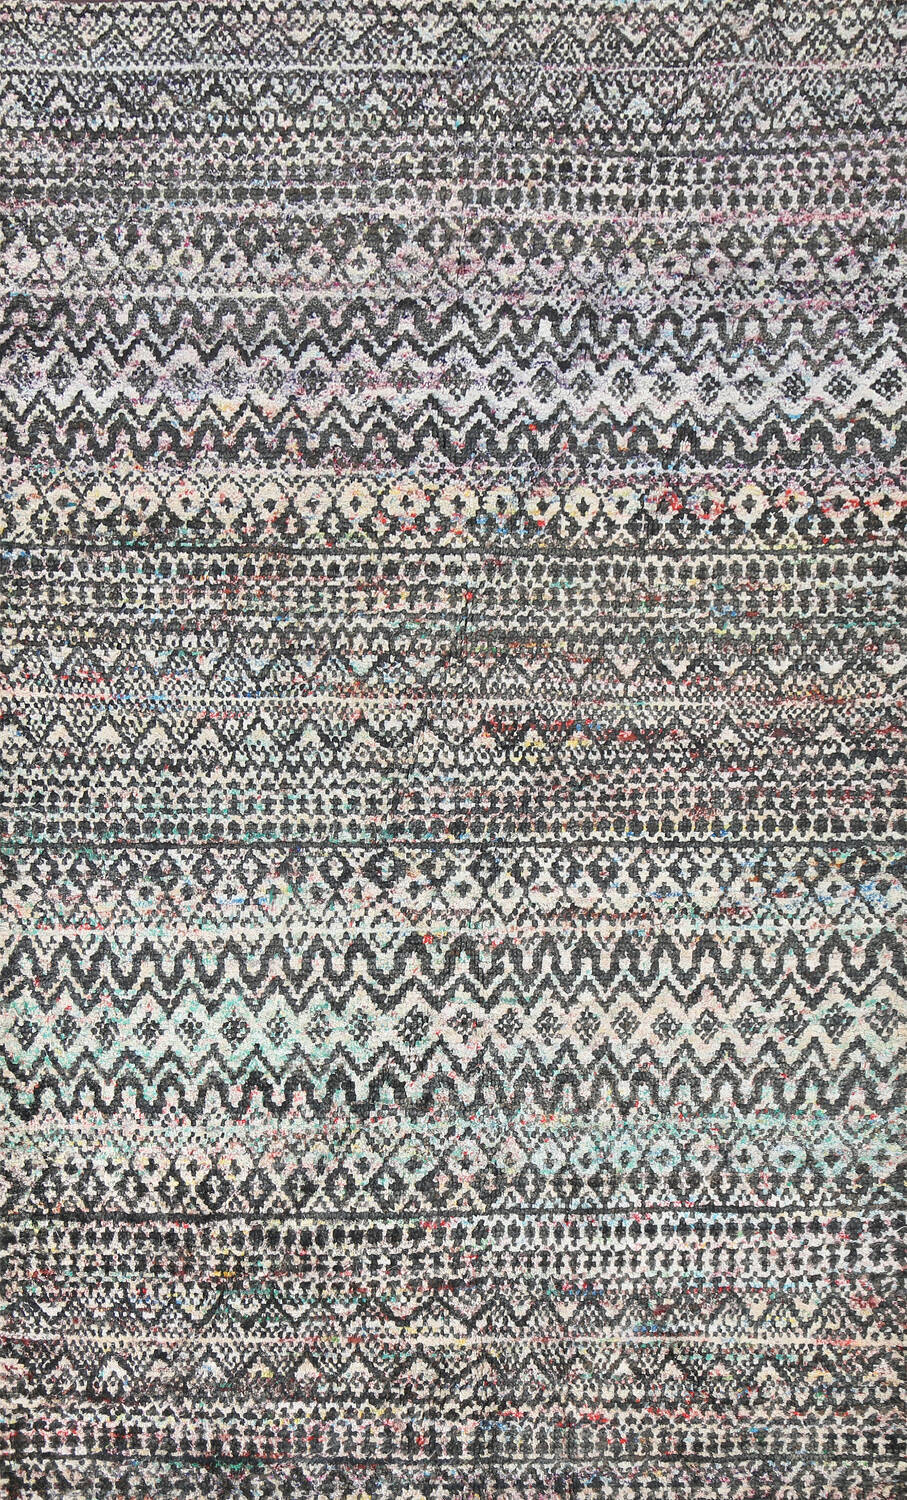 Chevron Style Abstract Oriental Area Rug 6x9 image 1